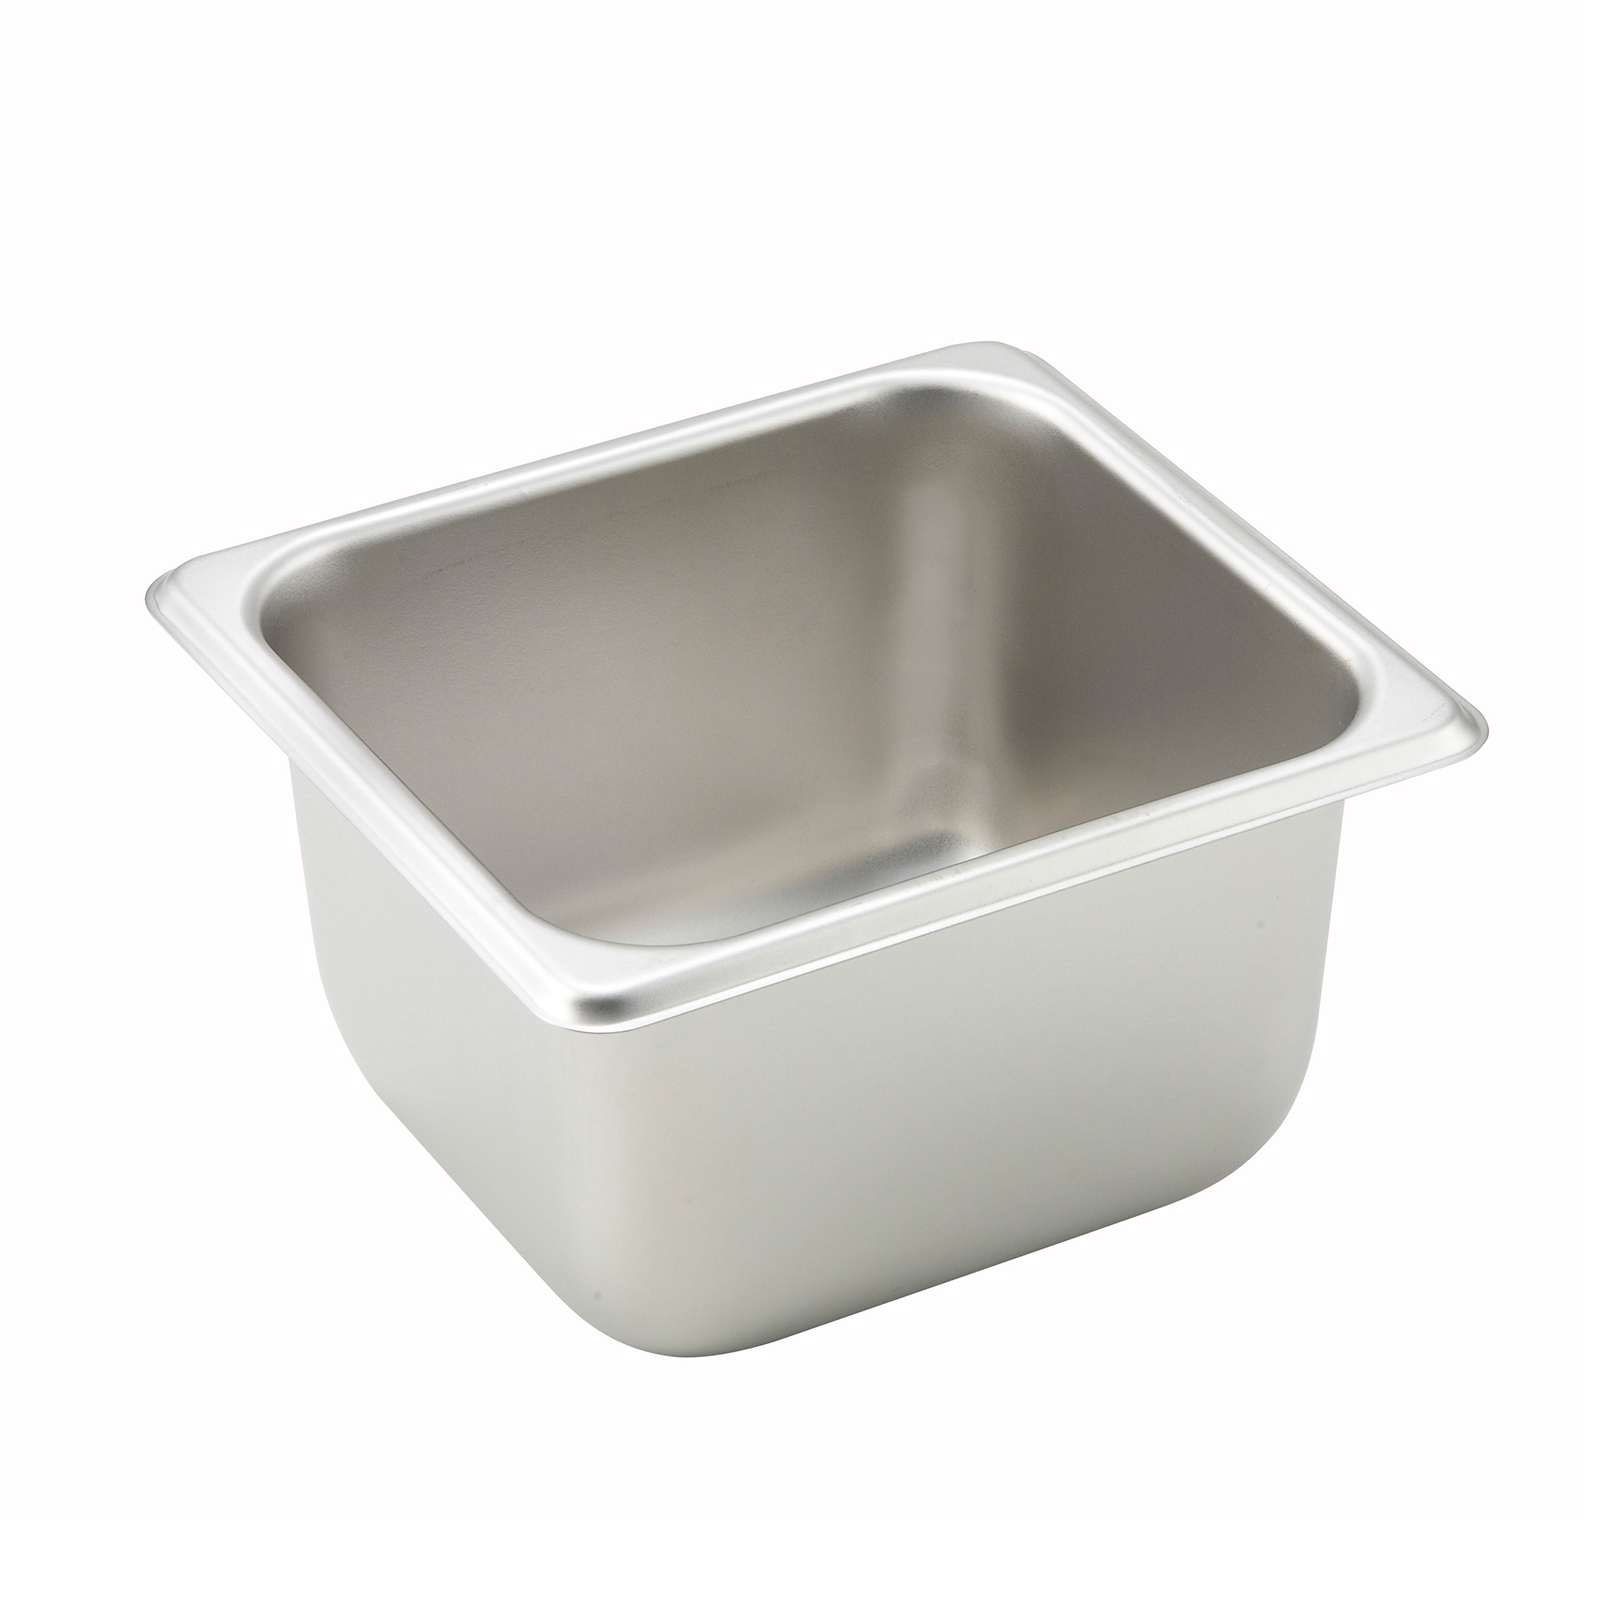 Winco SPS4 steam table pan, stainless steel